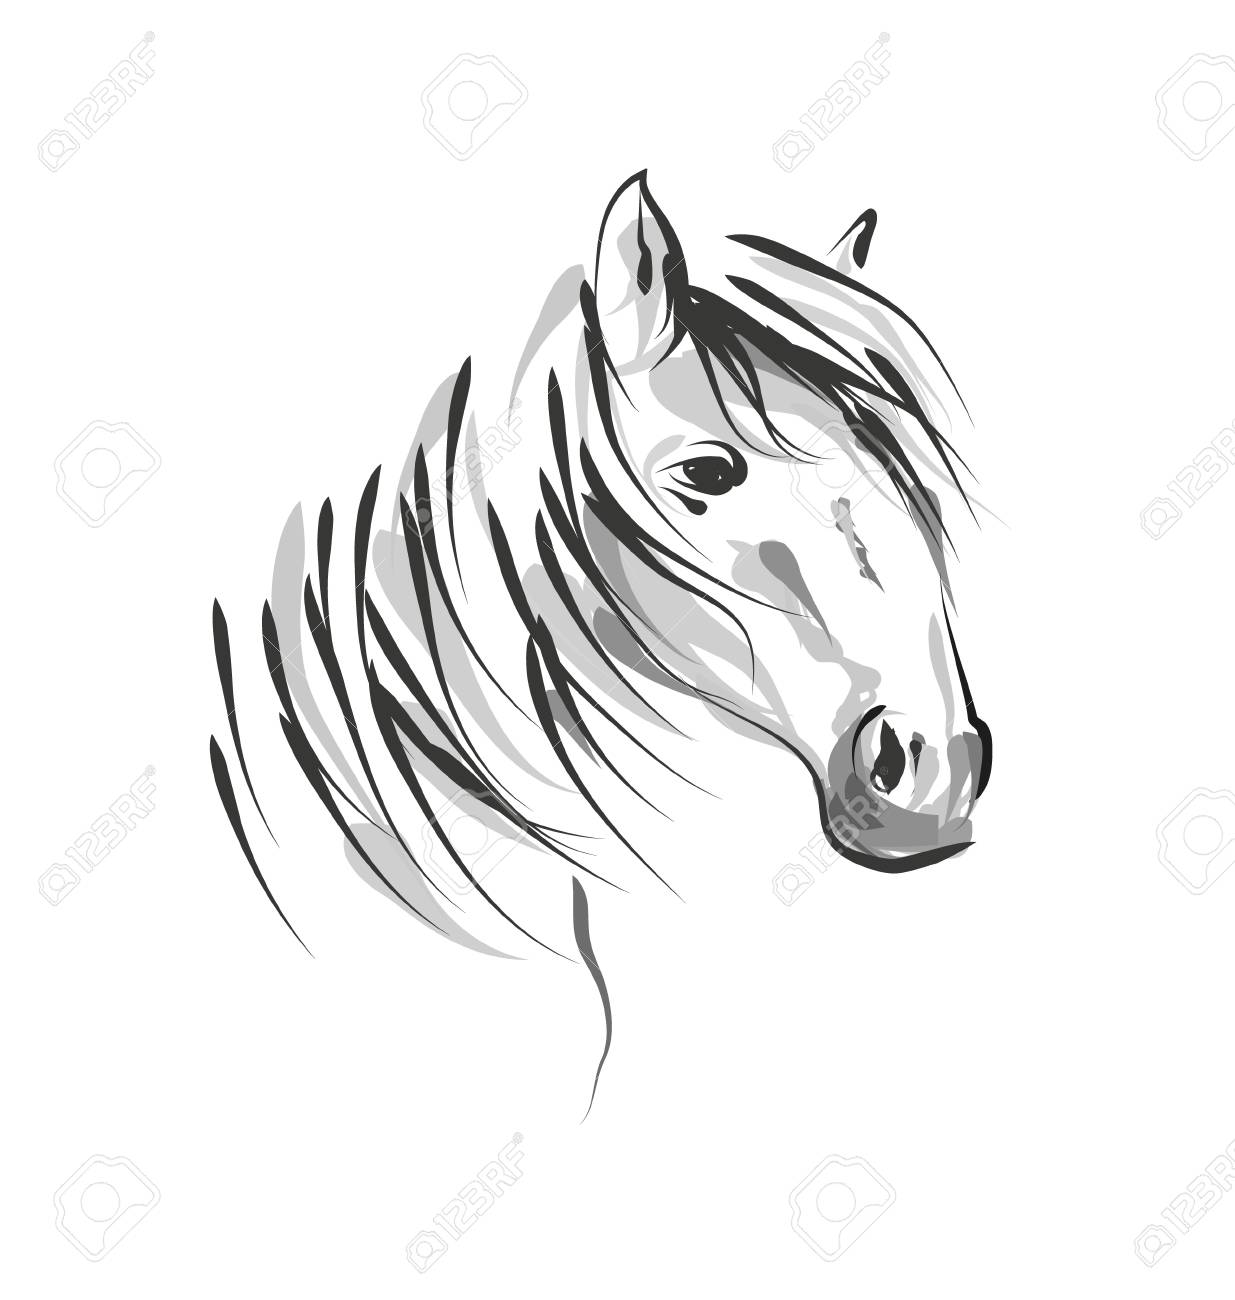 Vector Line Sketch Horse Head Royalty Free Cliparts Vectors And Stock Illustration Image 88075569